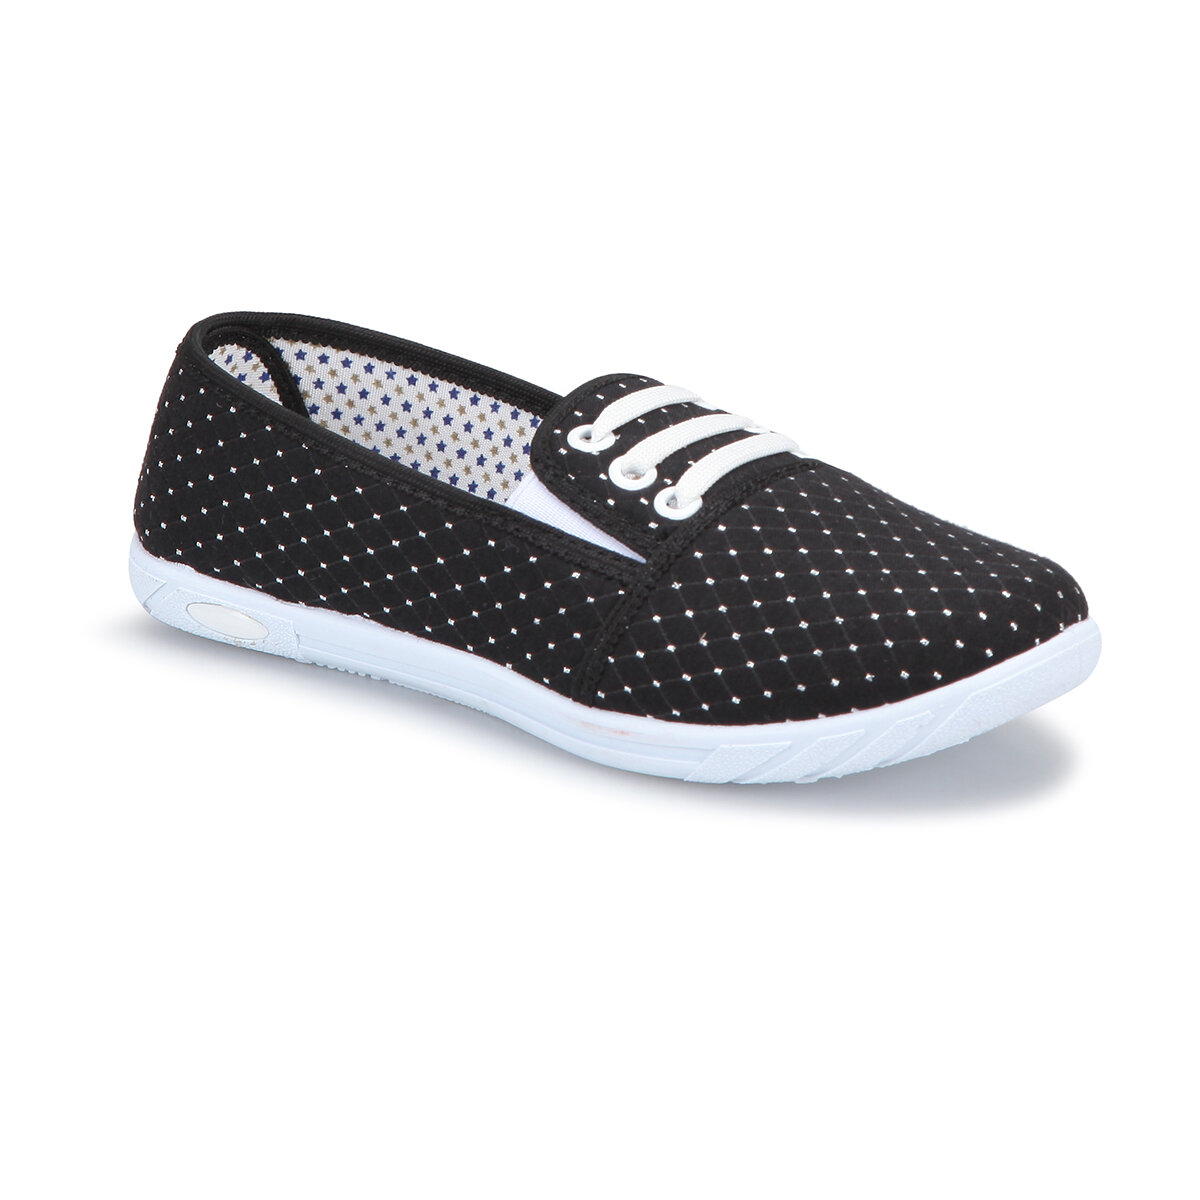 FLO 71. 354989.Z Black Women Slip On Shoes Polaris